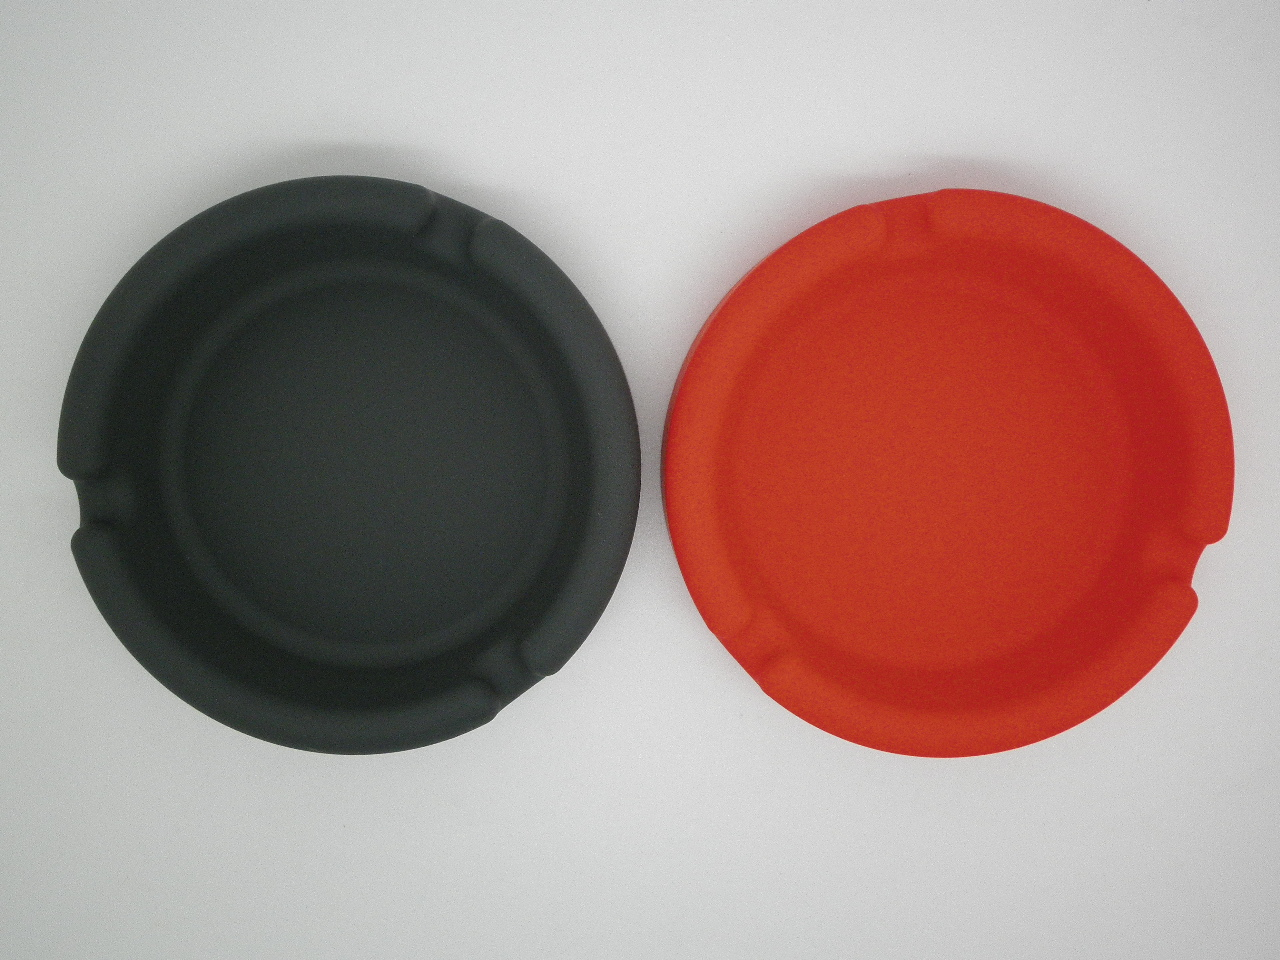 http://www.refinehksilicone.cn/data/images/product/20180417101618_705.JPG